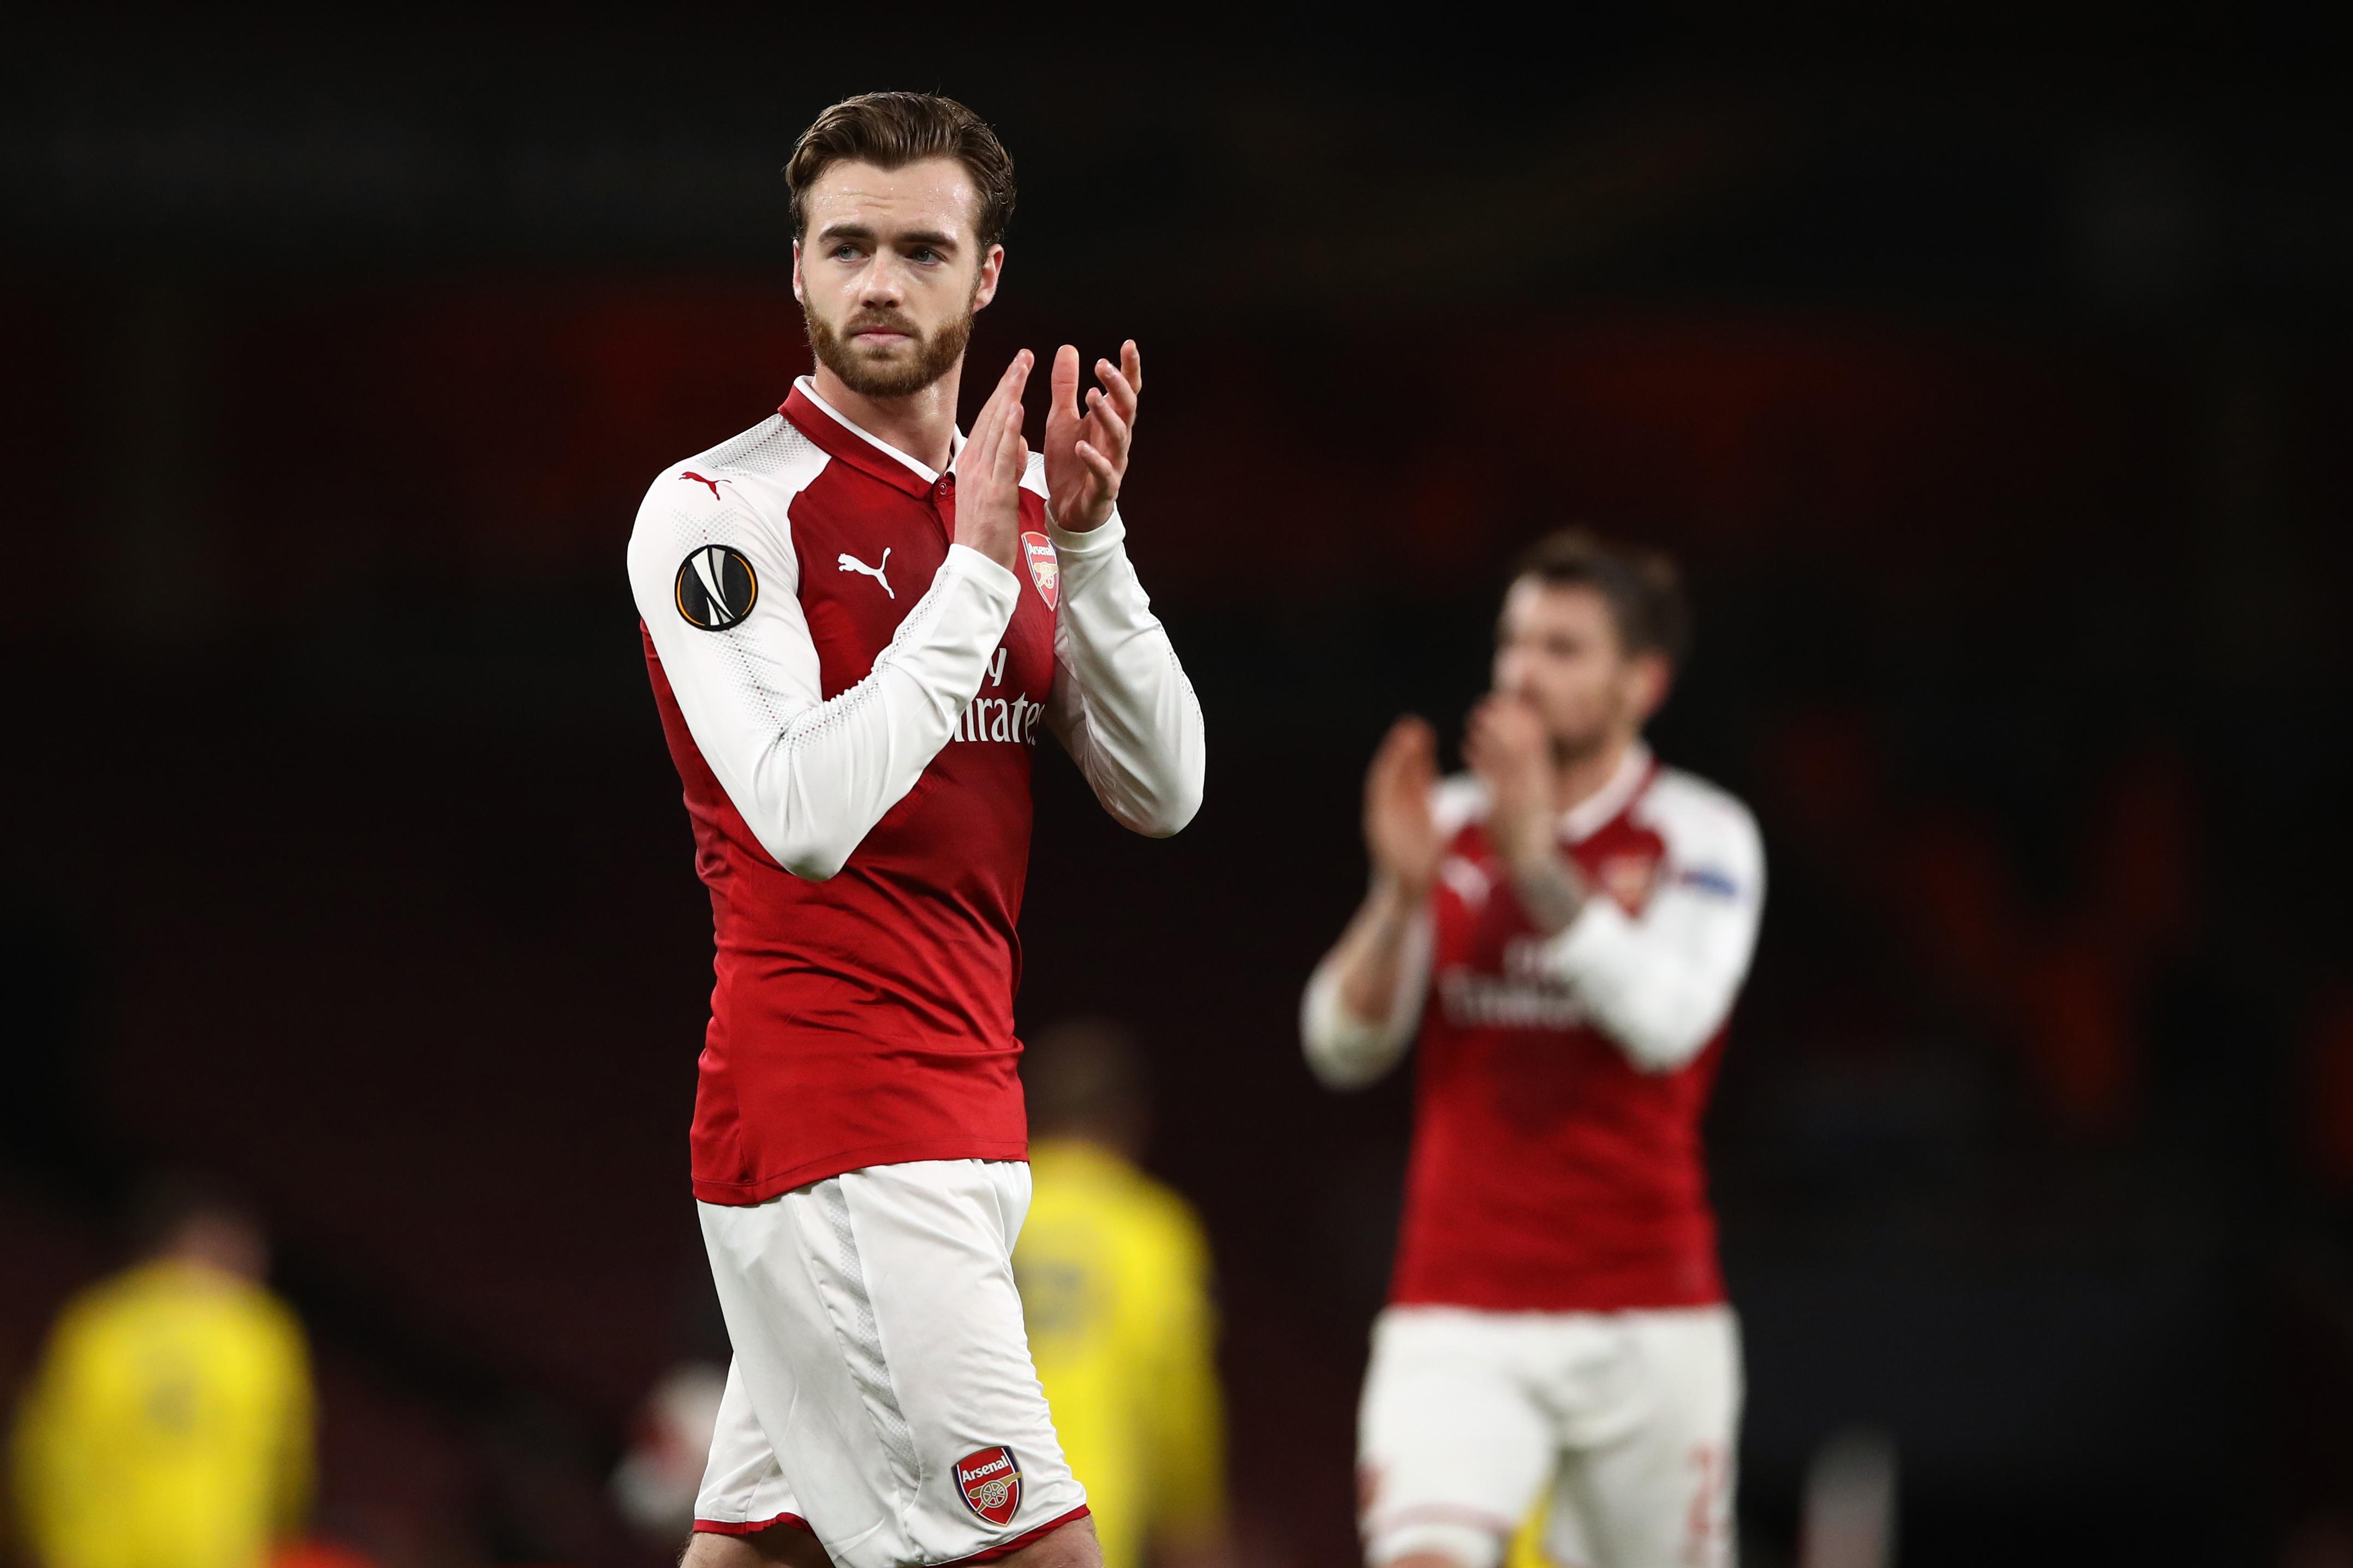 Calum Chambers has been sent to Fulham on loan for the 2018-19 season